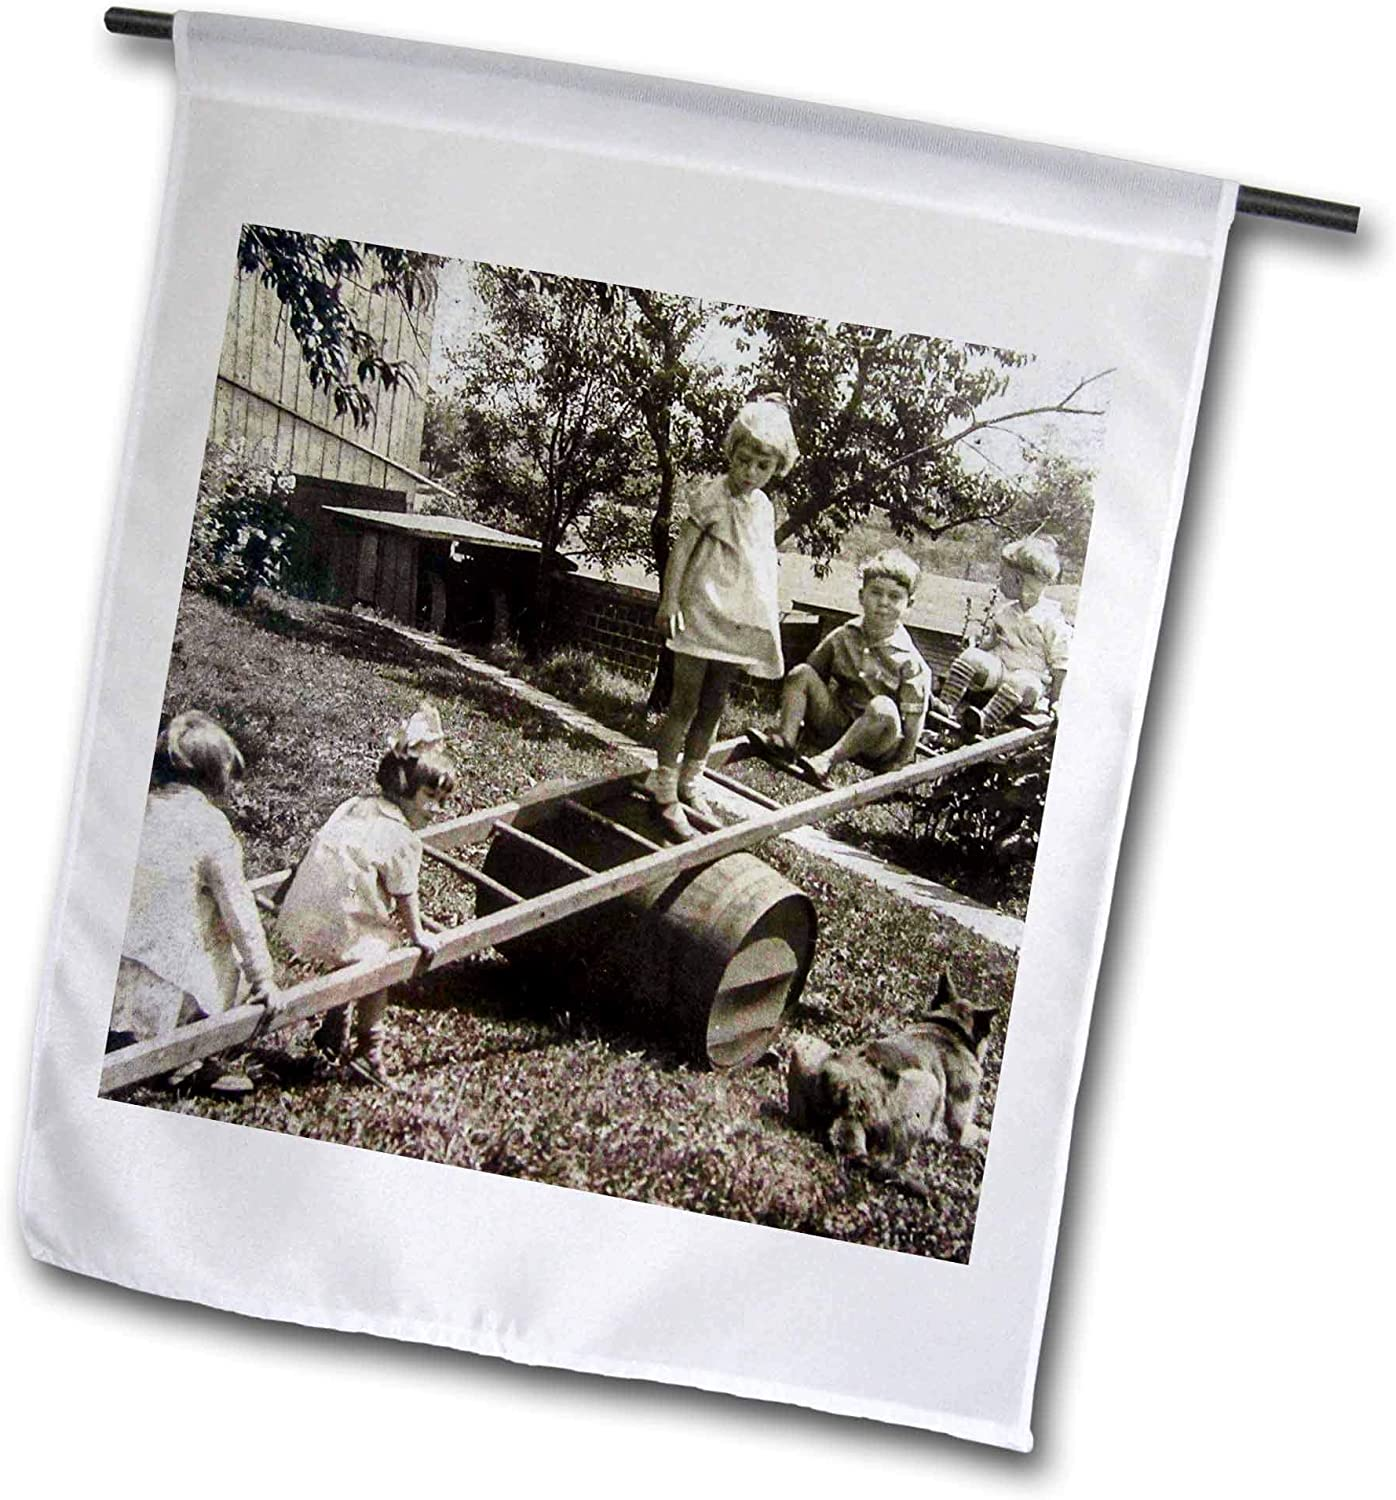 3dRose Scenes from The Past - Magic Lantern - Kids Playing on a Homemade Seesaw Vintage Photo - 12 x 18 inch Garden Flag (fl_301262_1)